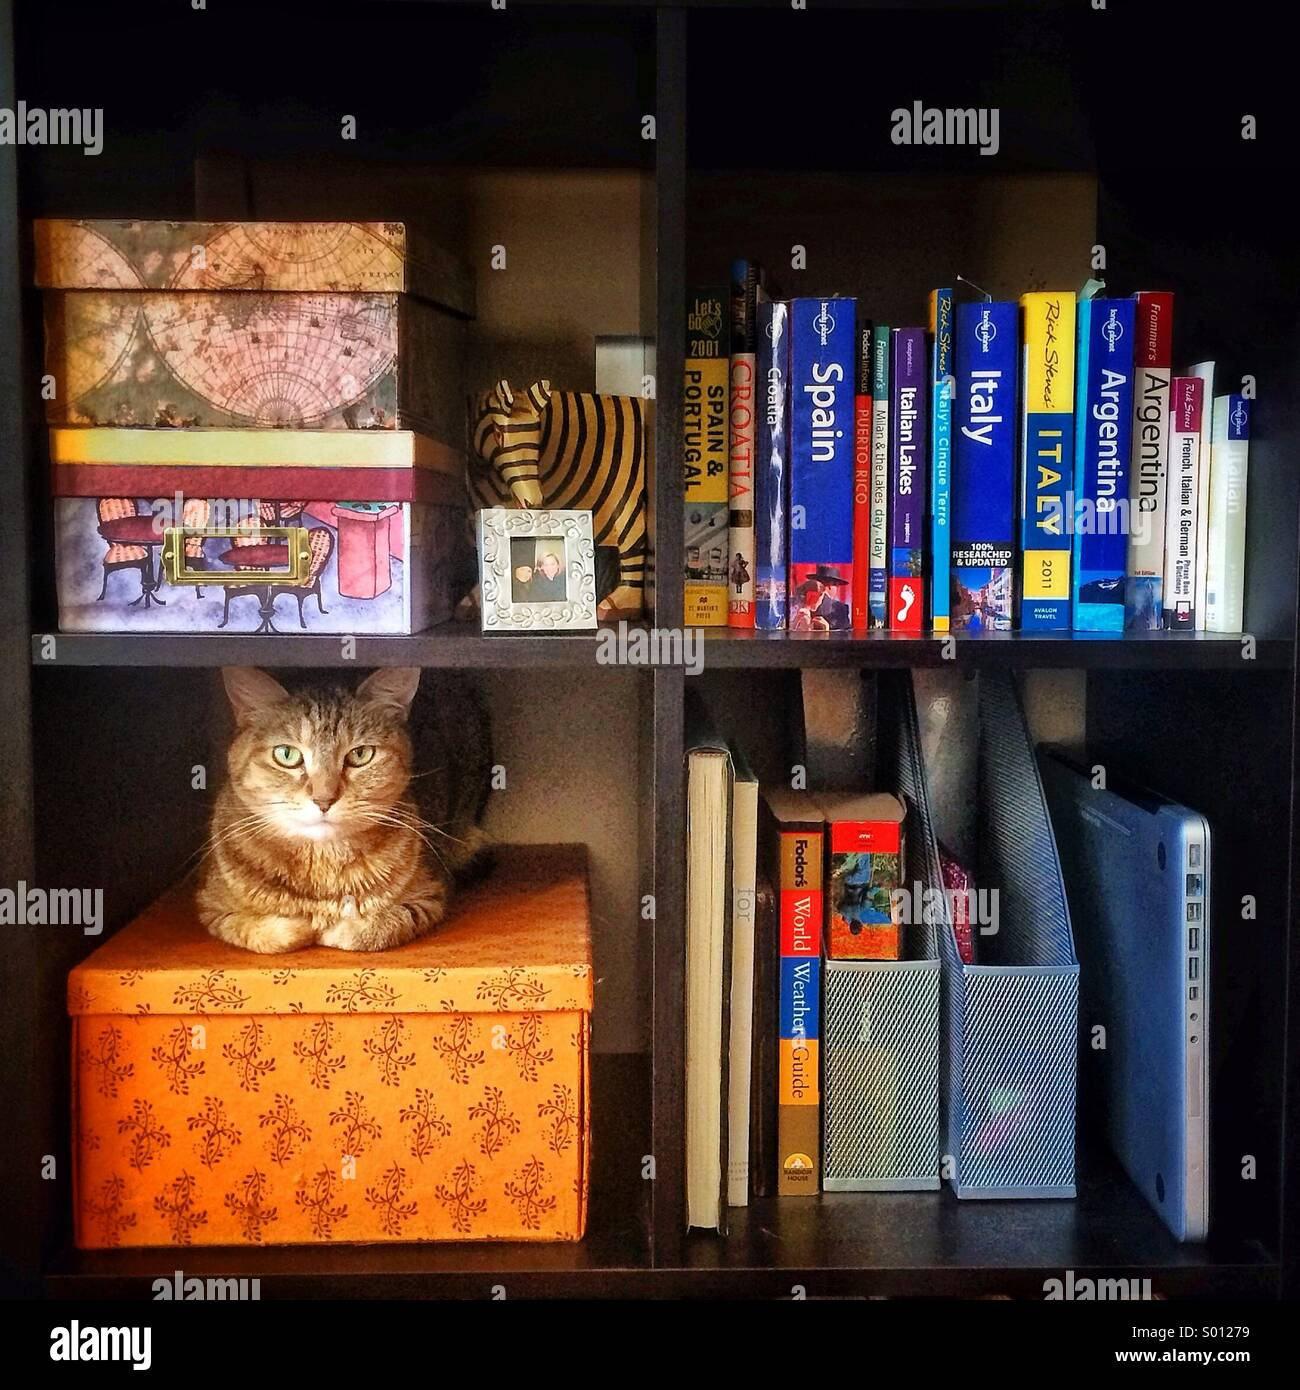 Cat In A Bookshelf